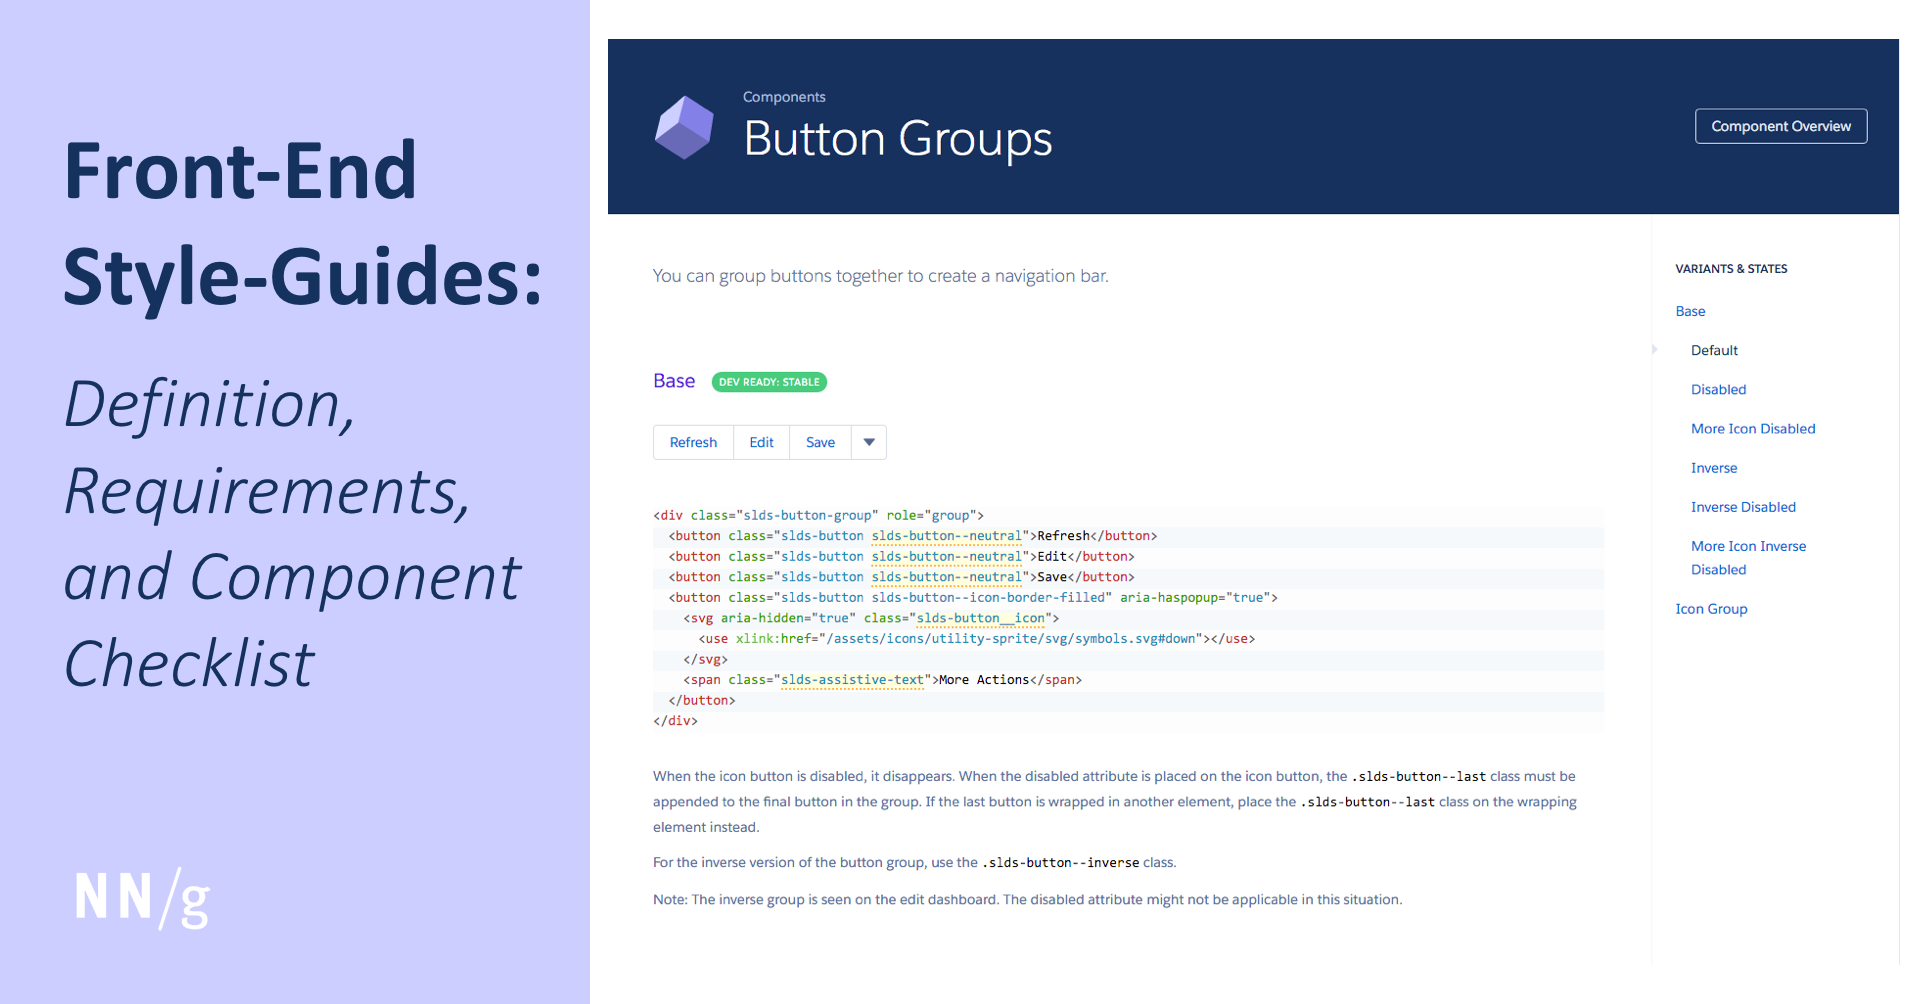 Front-End Style-Guides: Definition, Requirements, Component Checklist